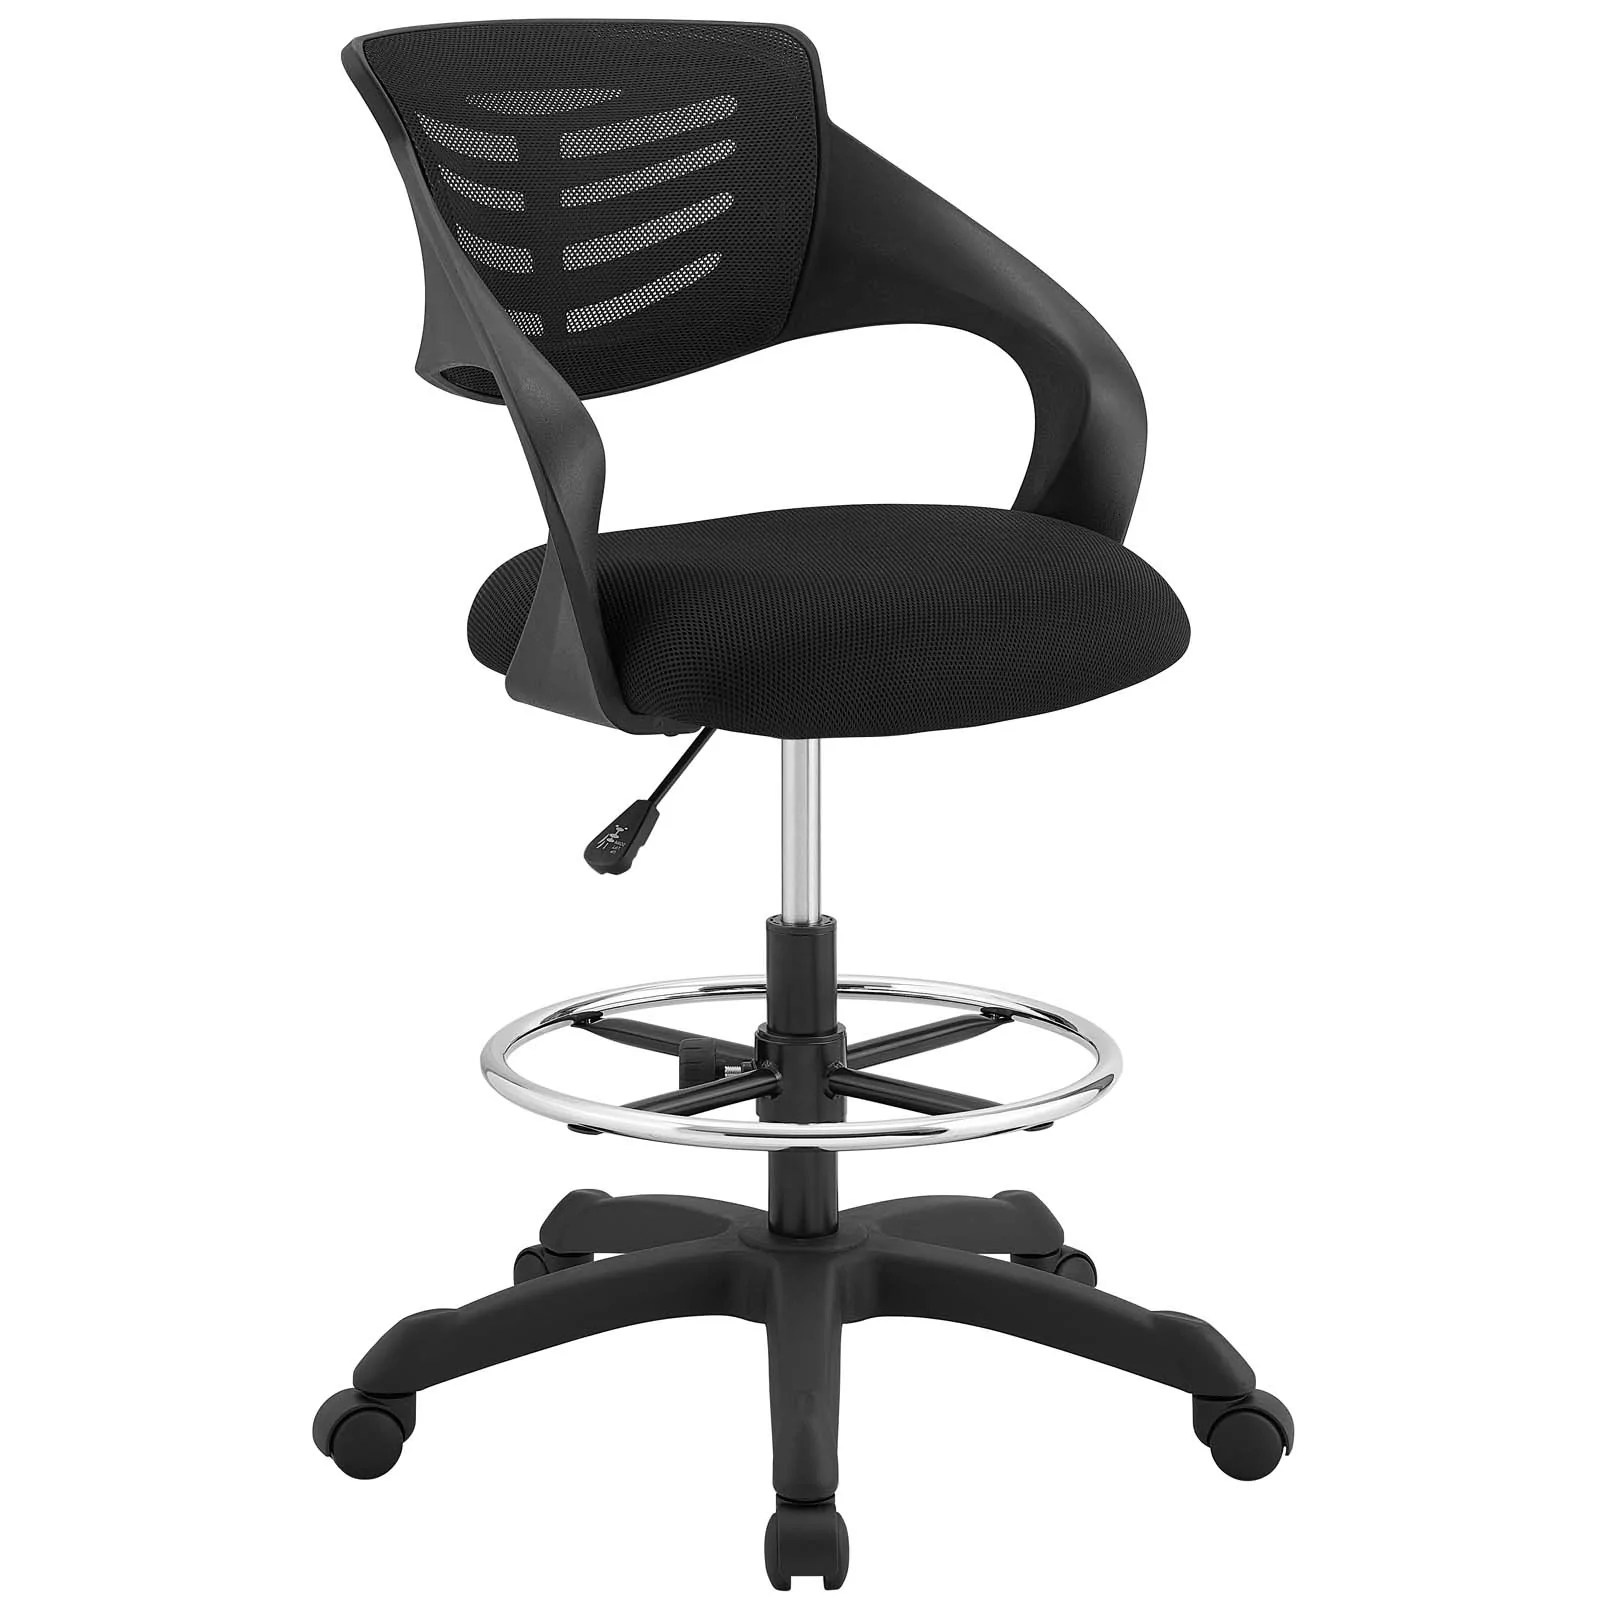 modern drafting chair tattoo chairs for sale modway on eei 3040 blk thrive breathable mesh black